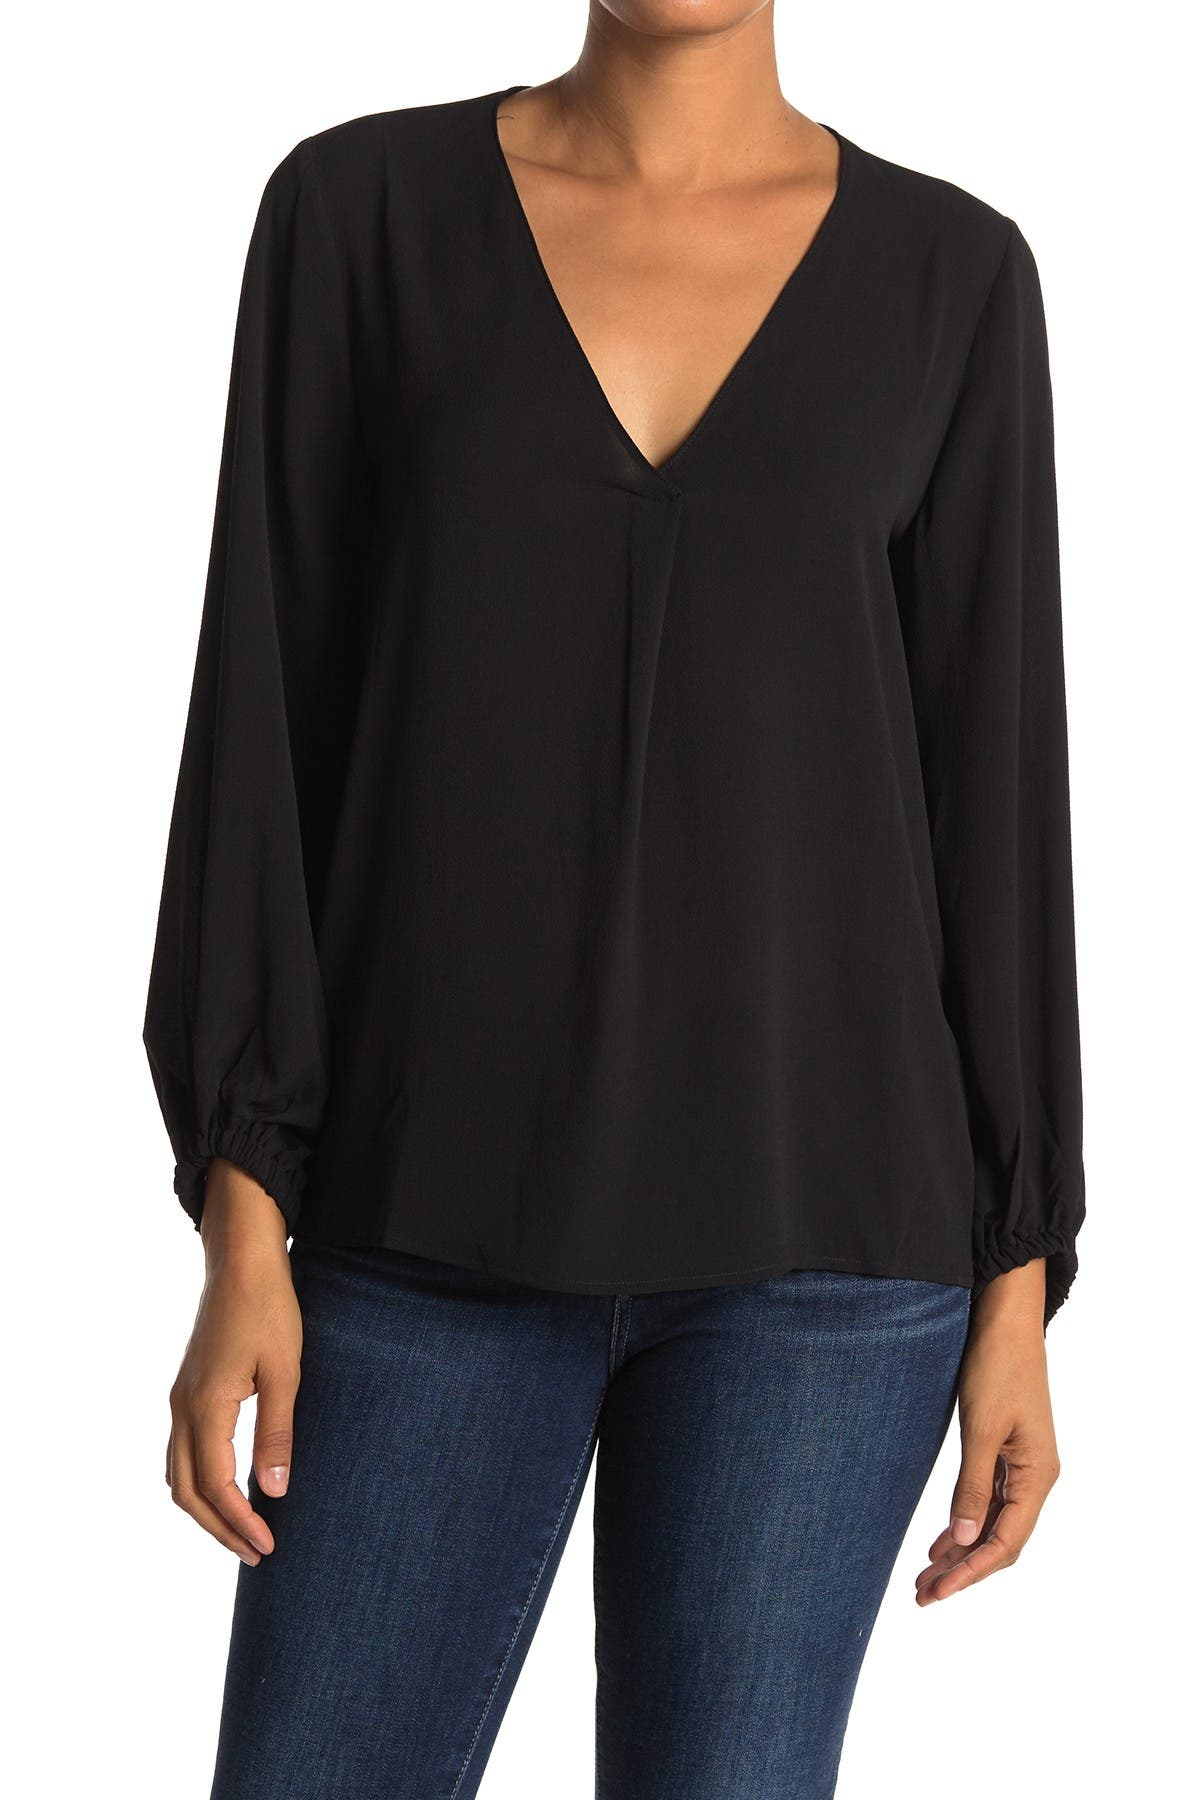 Image of Lush V-Neck Balloon Sleeve Top